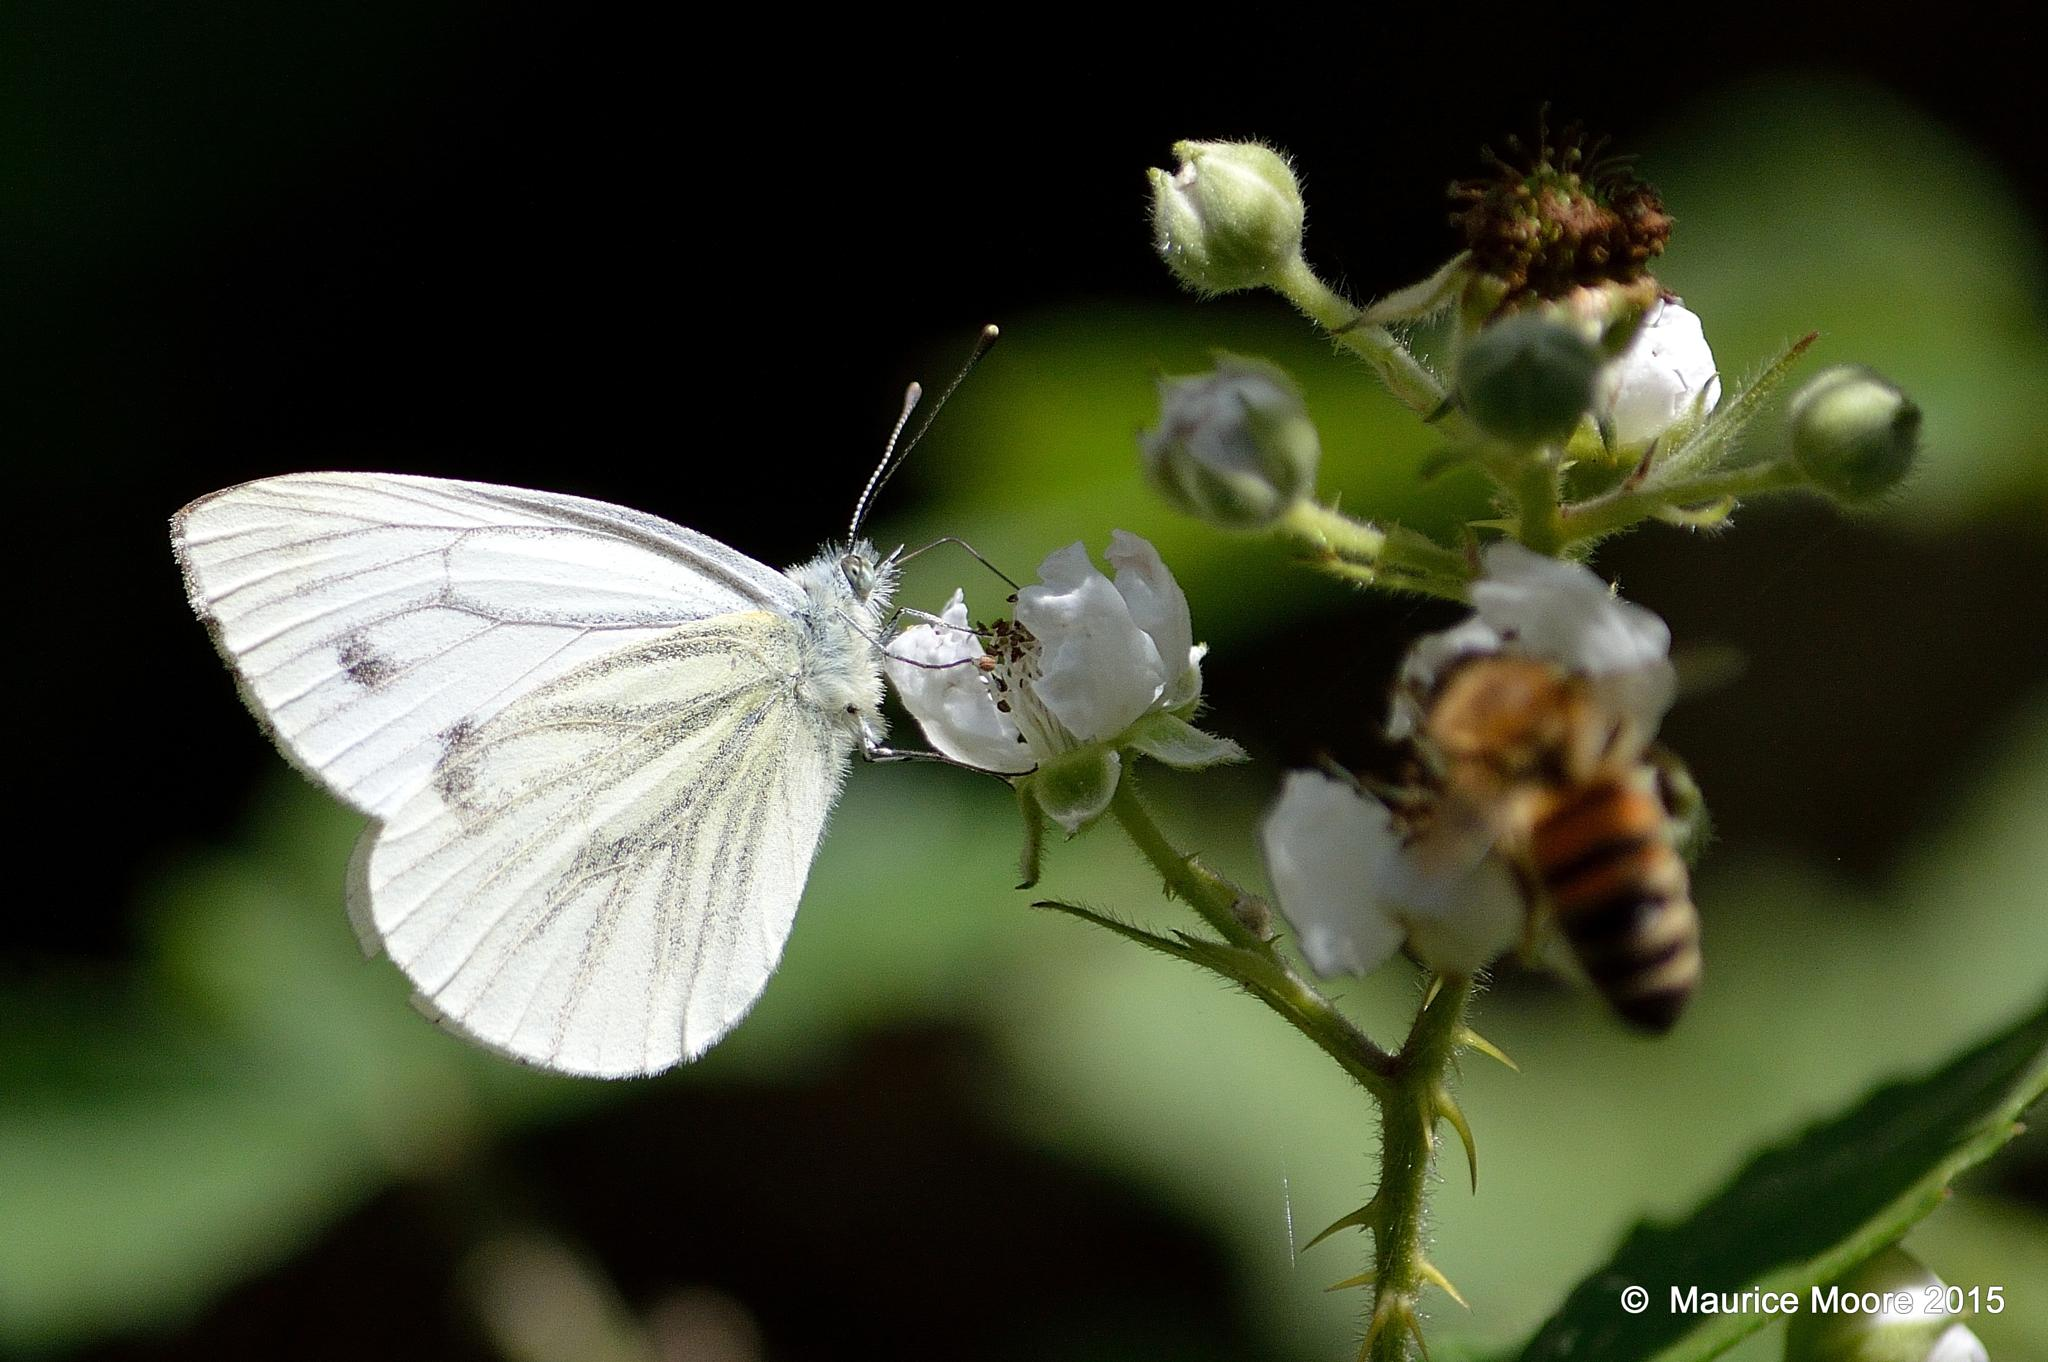 The White Butterfly (& the Bee) by Maurice Moore